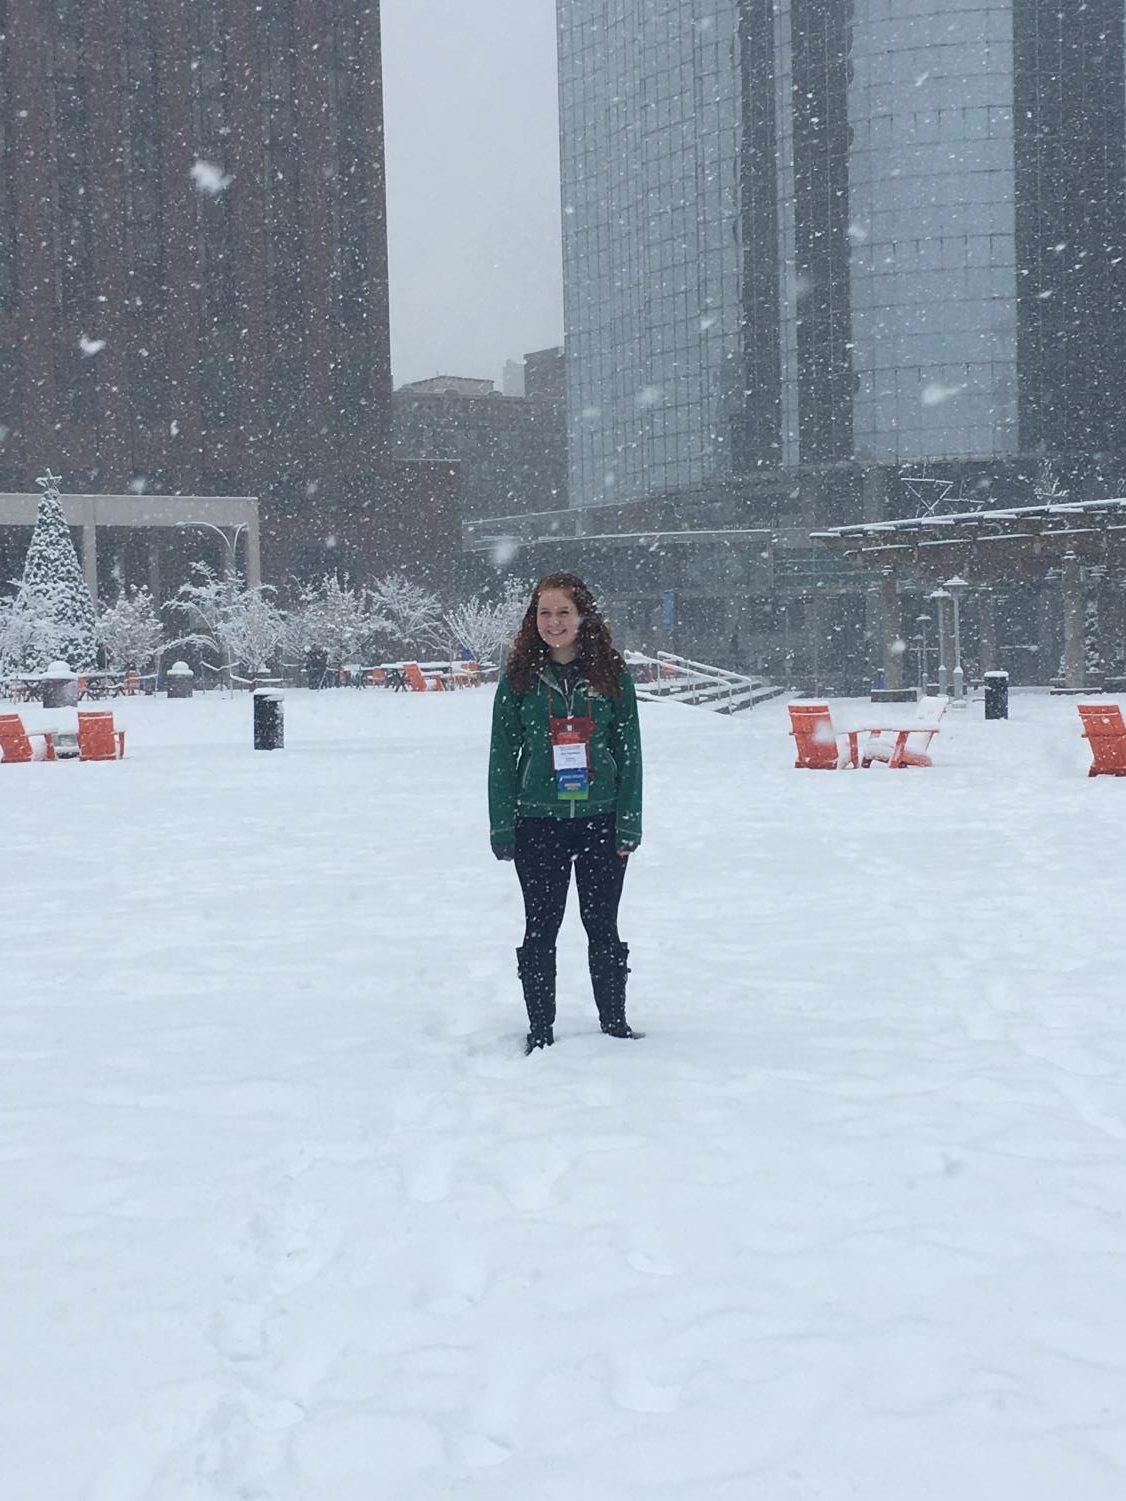 Elise Thompkins stands tall in downtown Kansas City during the snowfall at thescon